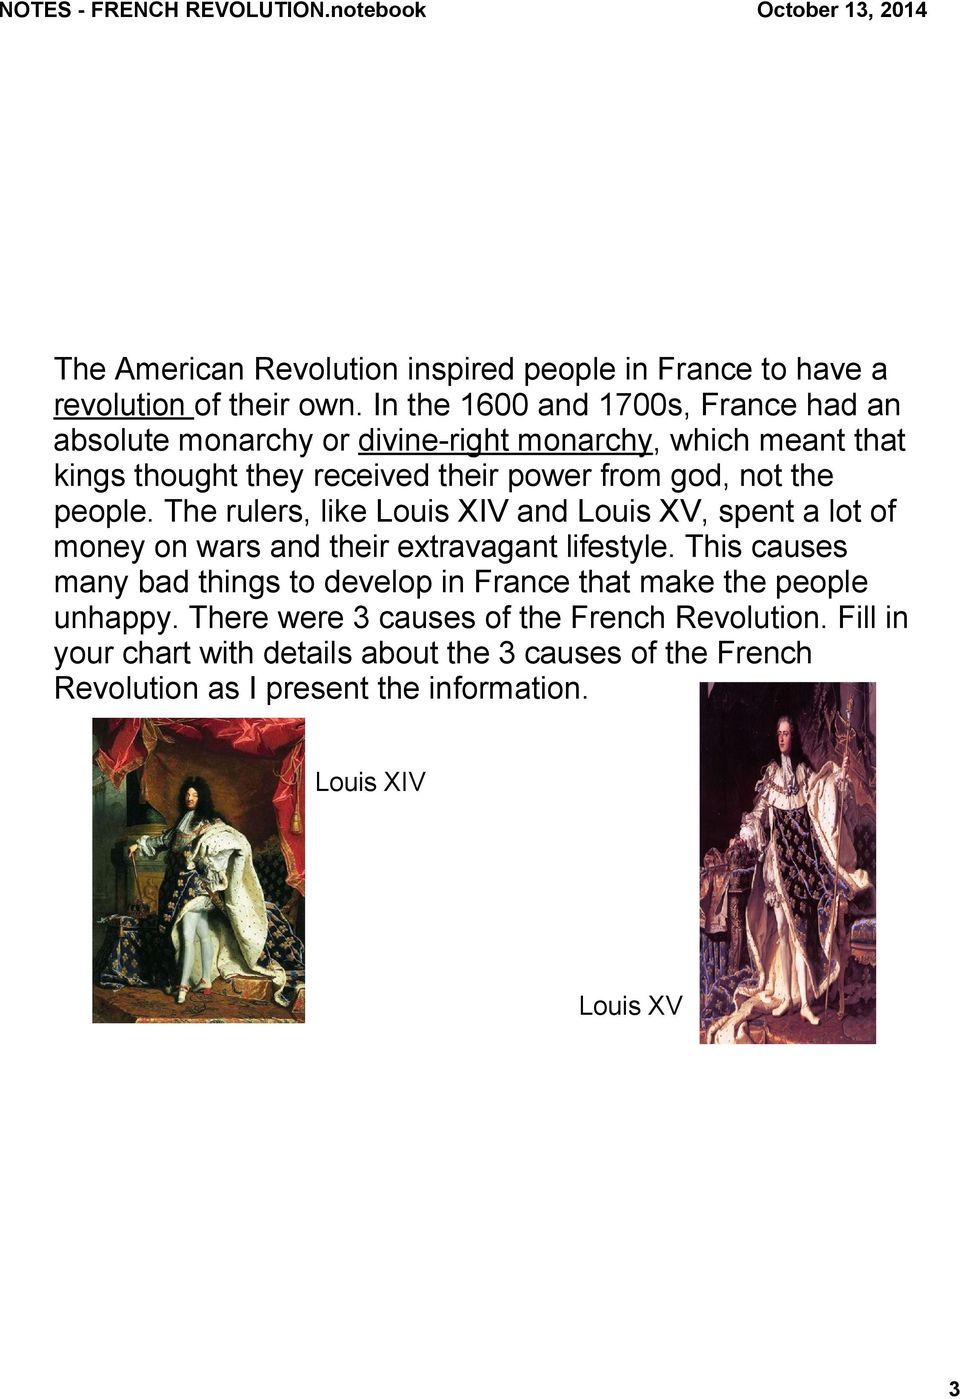 not the people. The rulers, like Louis XIV and Louis XV, spent a lot of money on wars and their extravagant lifestyle.